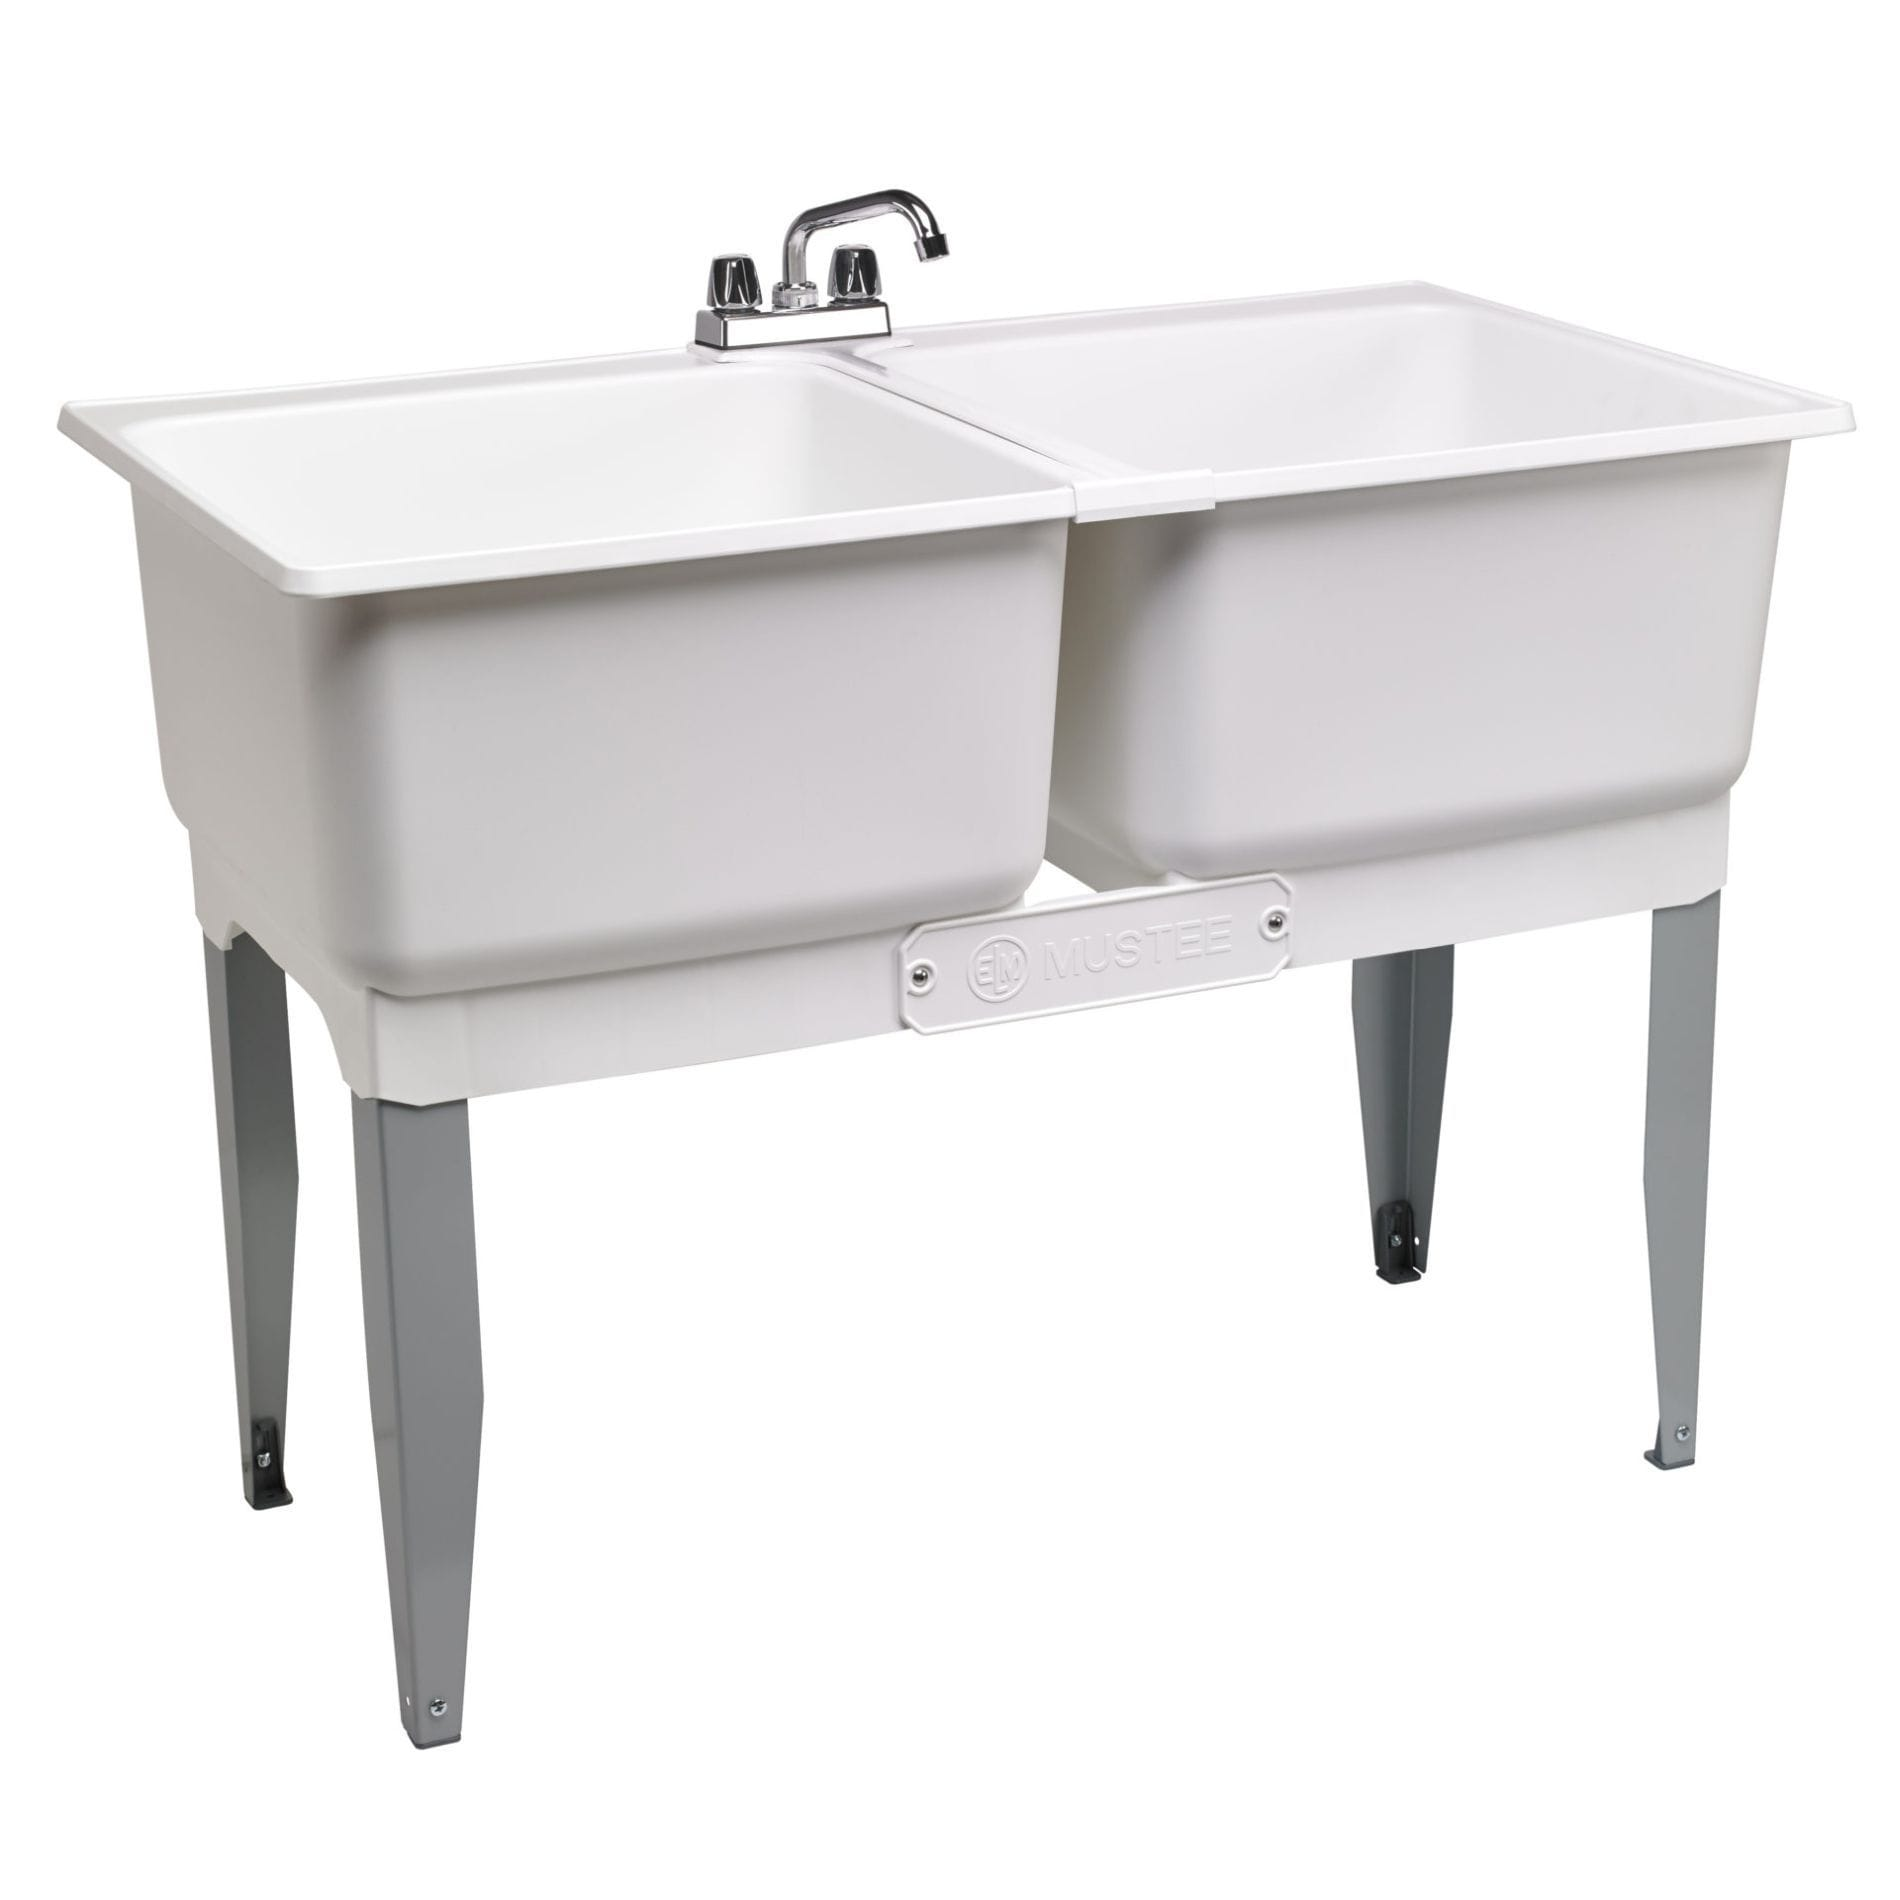 Shop Double Laundry Tub 46 In White Free Shipping Today